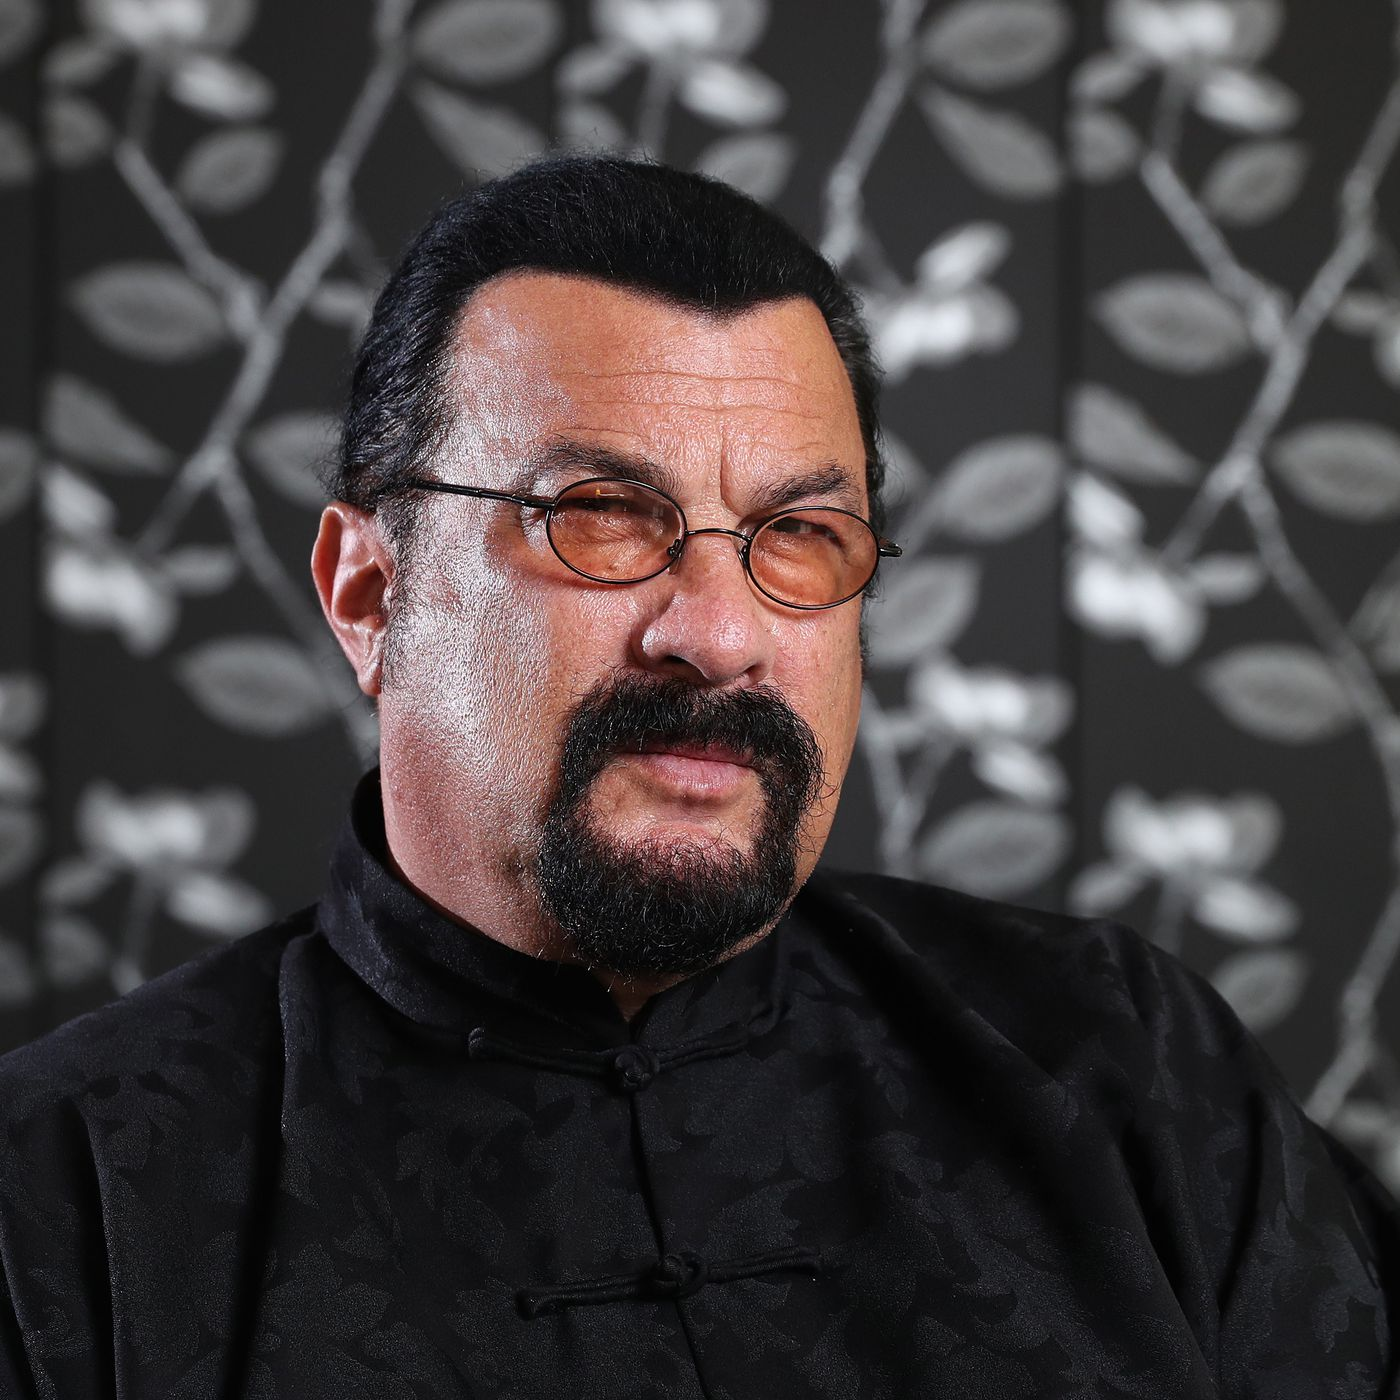 Steven Seagal Settles With Sec Over 2018 Cryptocurrency Promotion The Verge